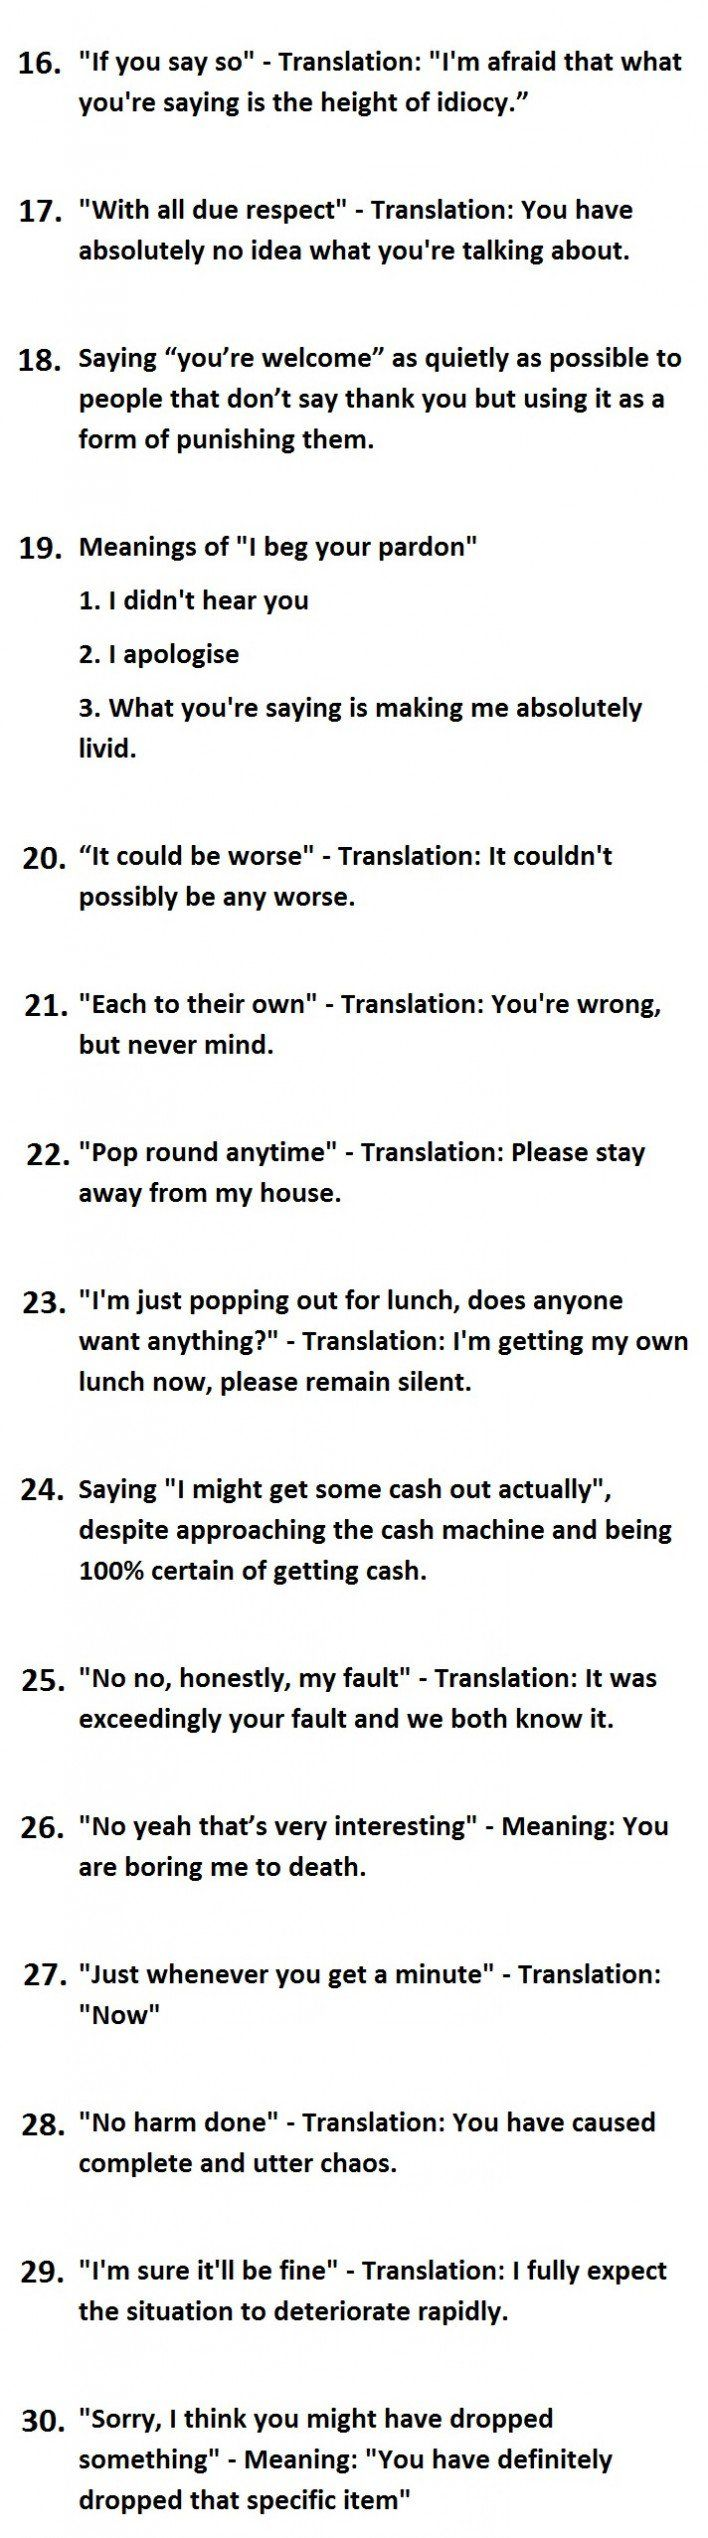 30 things british people say vs what we actually mean